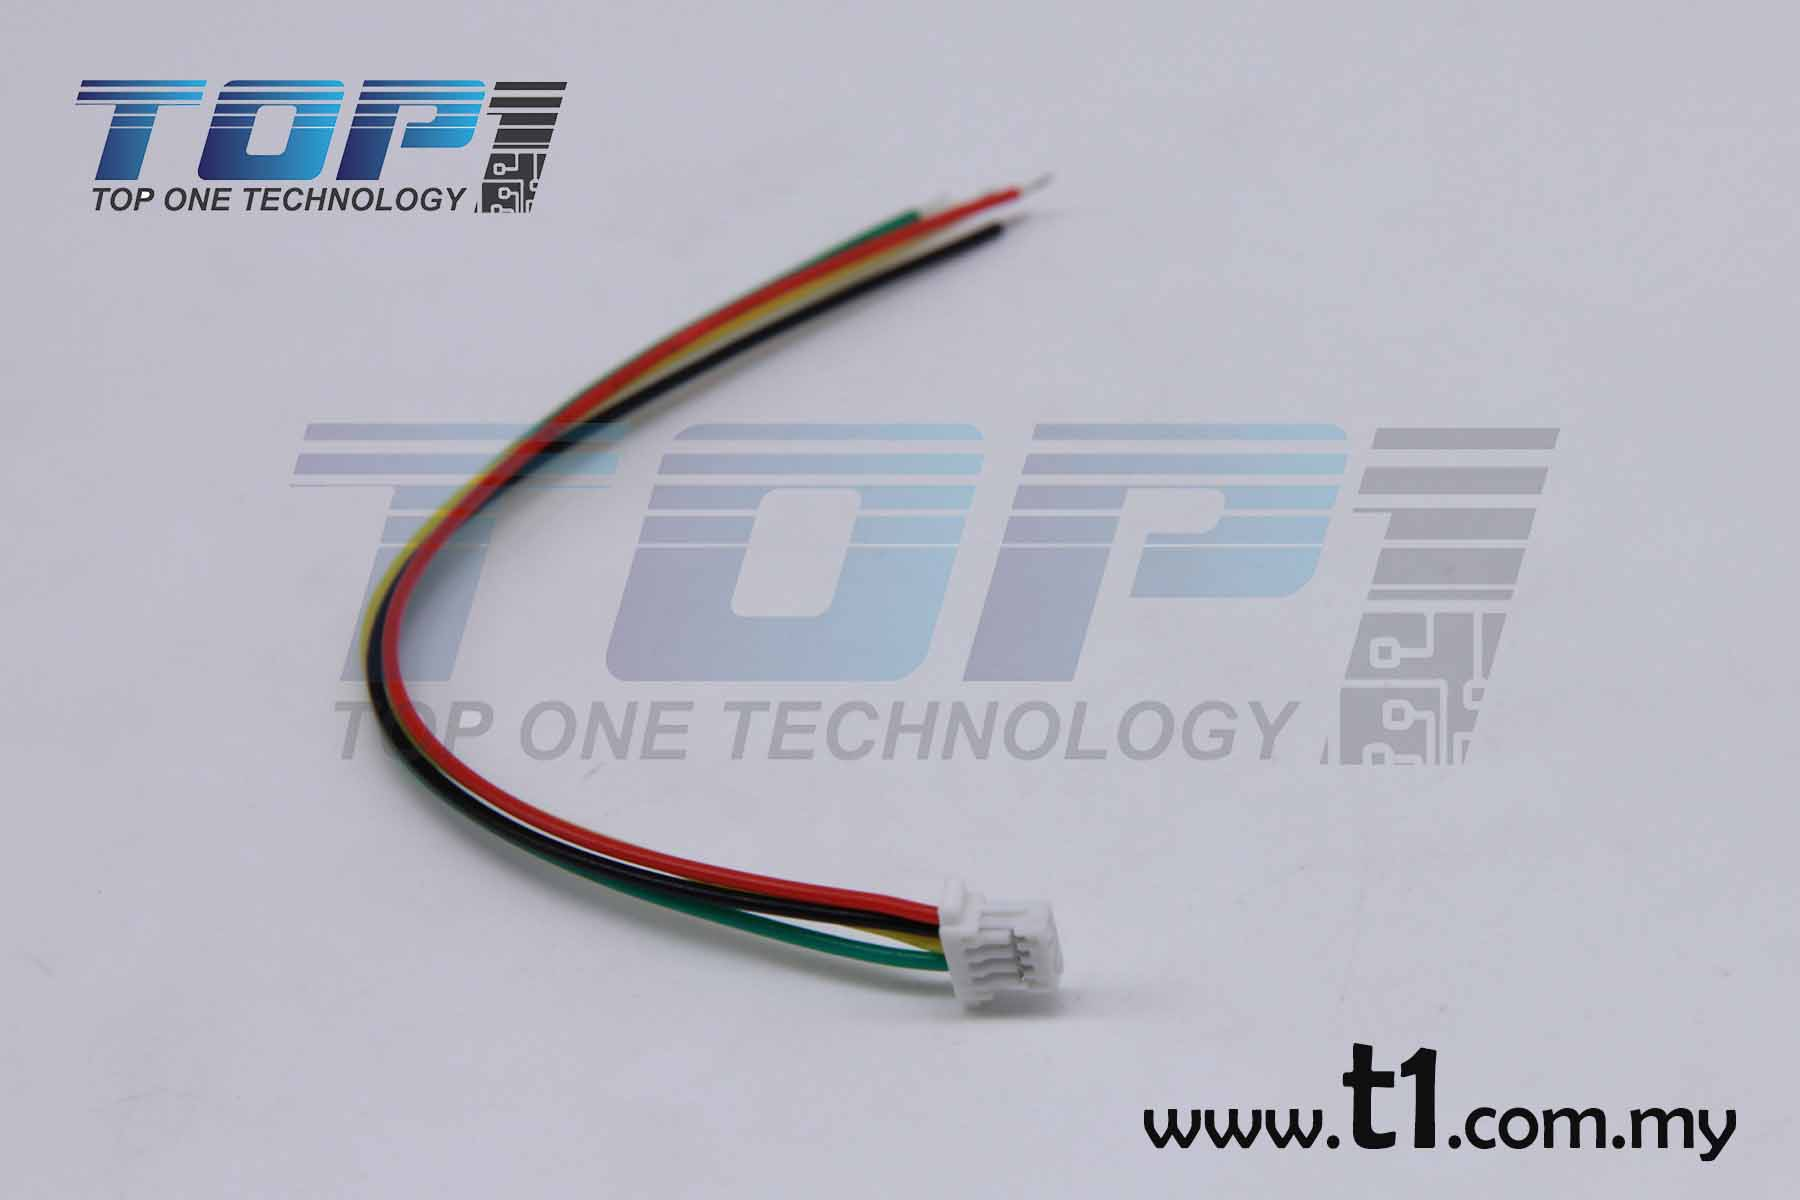 T1 Wiring Extension Trusted Diagram Jack 1mm Pitch 4 Way Connector End 9 28 2020 39 Pm Rh Lelong Com My Pinout Cable